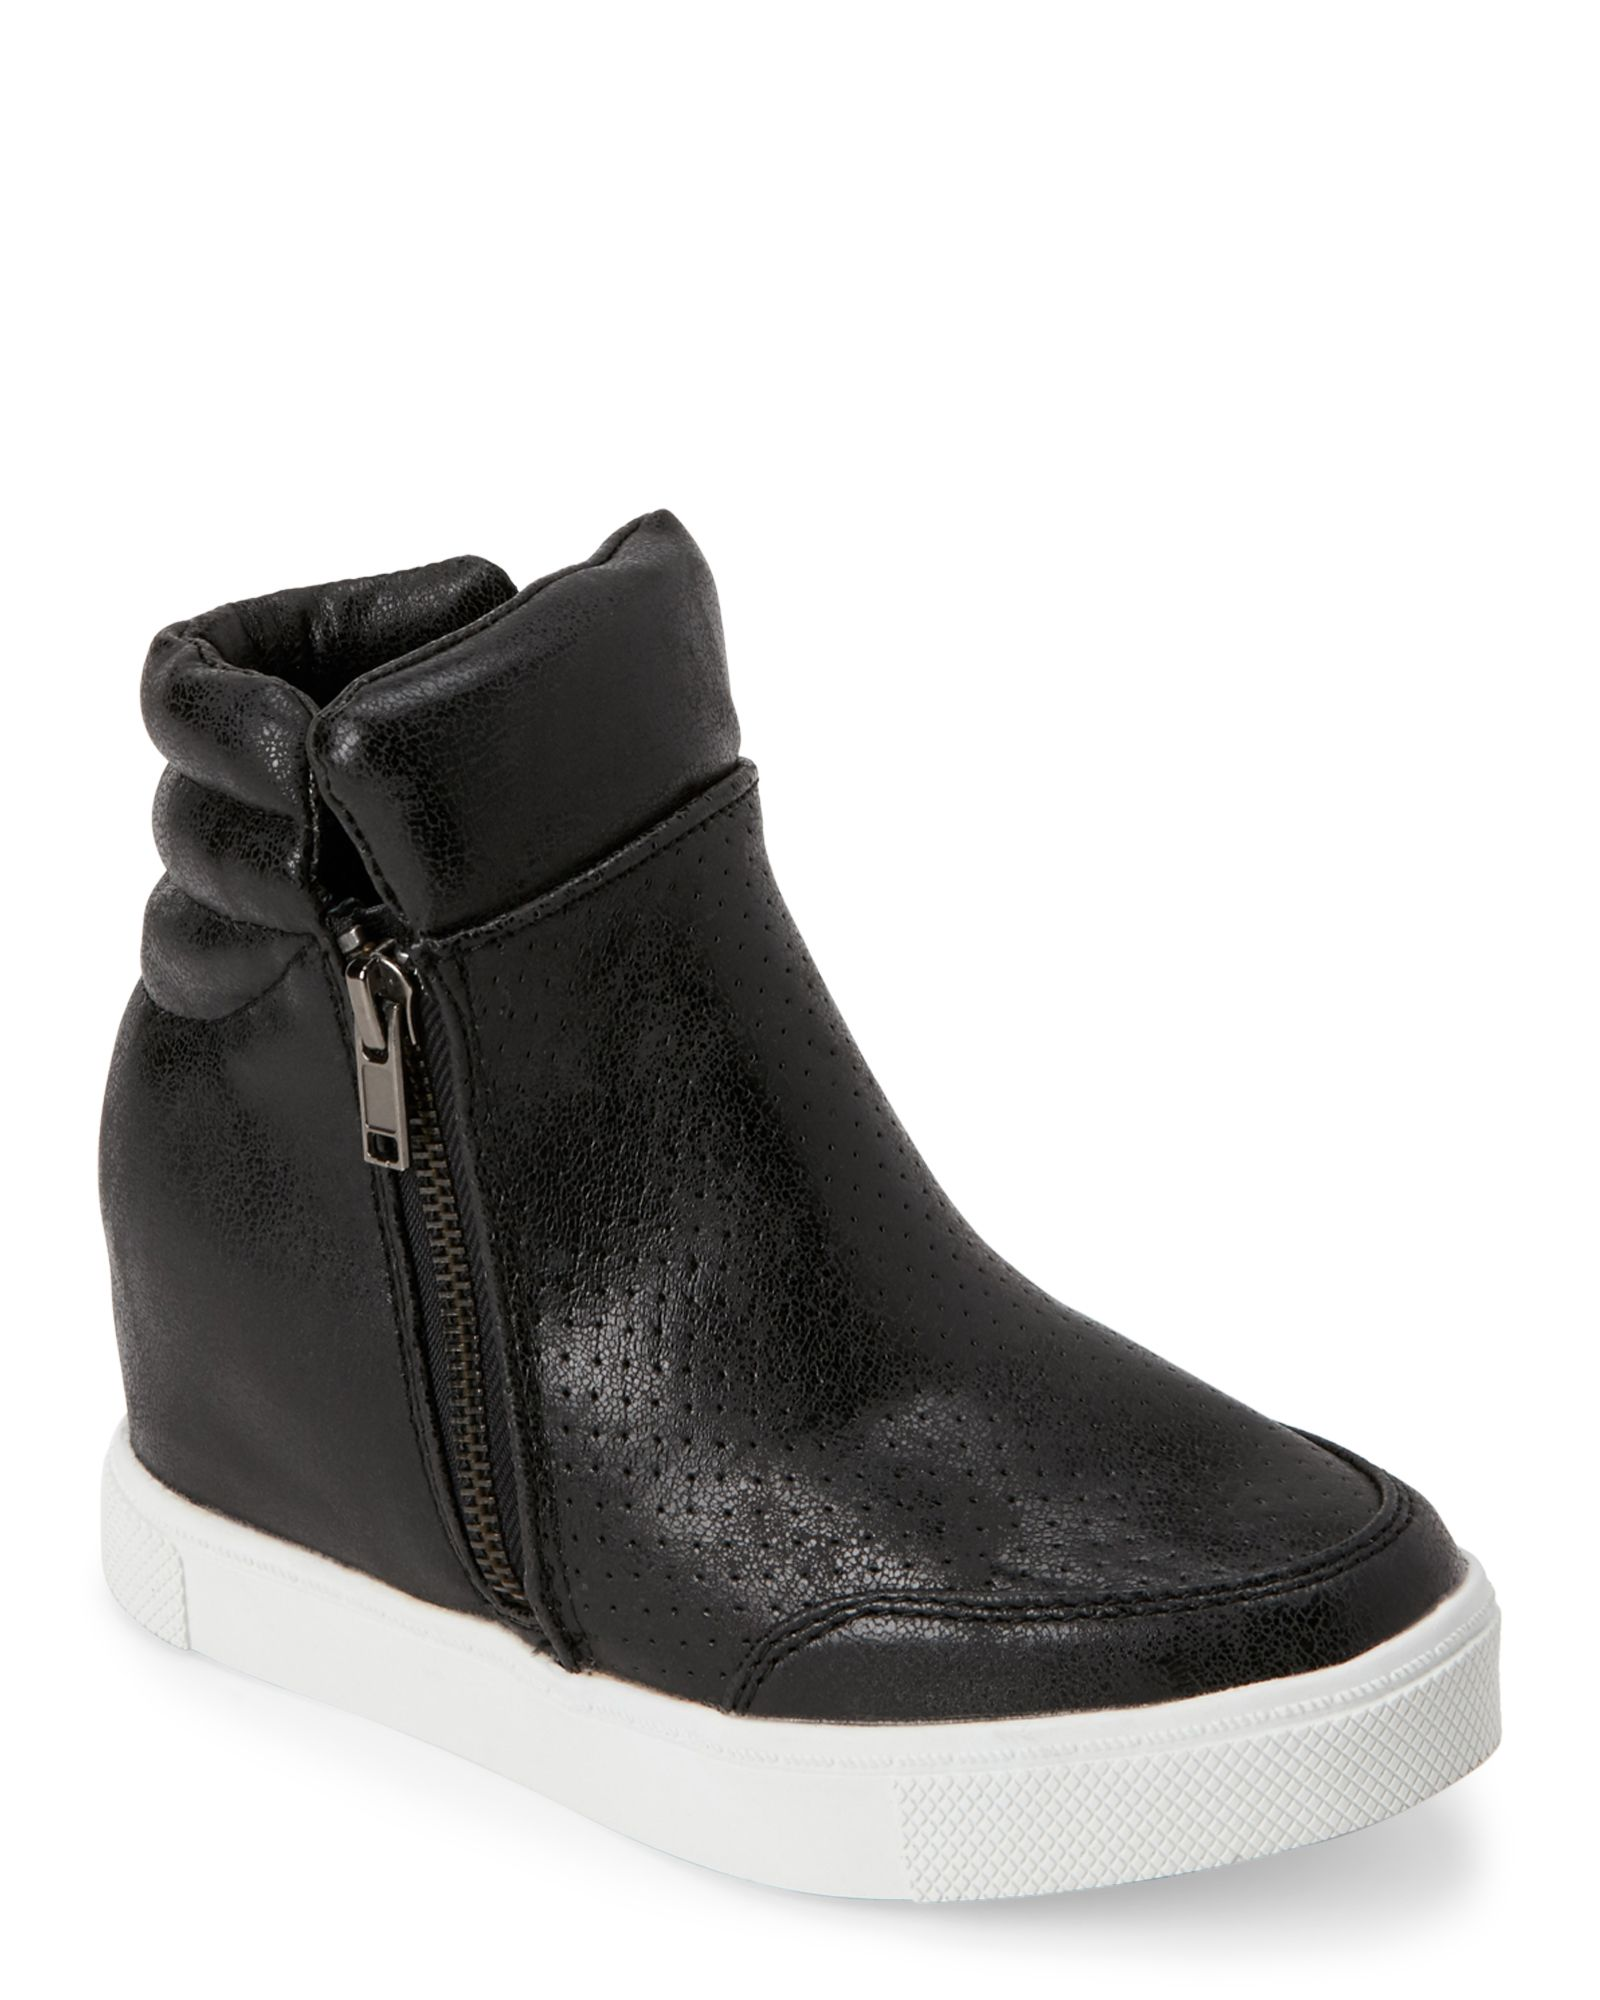 bce12bd40a0 Steve Madden (Kids Girls) Black JLinqsq Perforated Wedge Sneakers ...